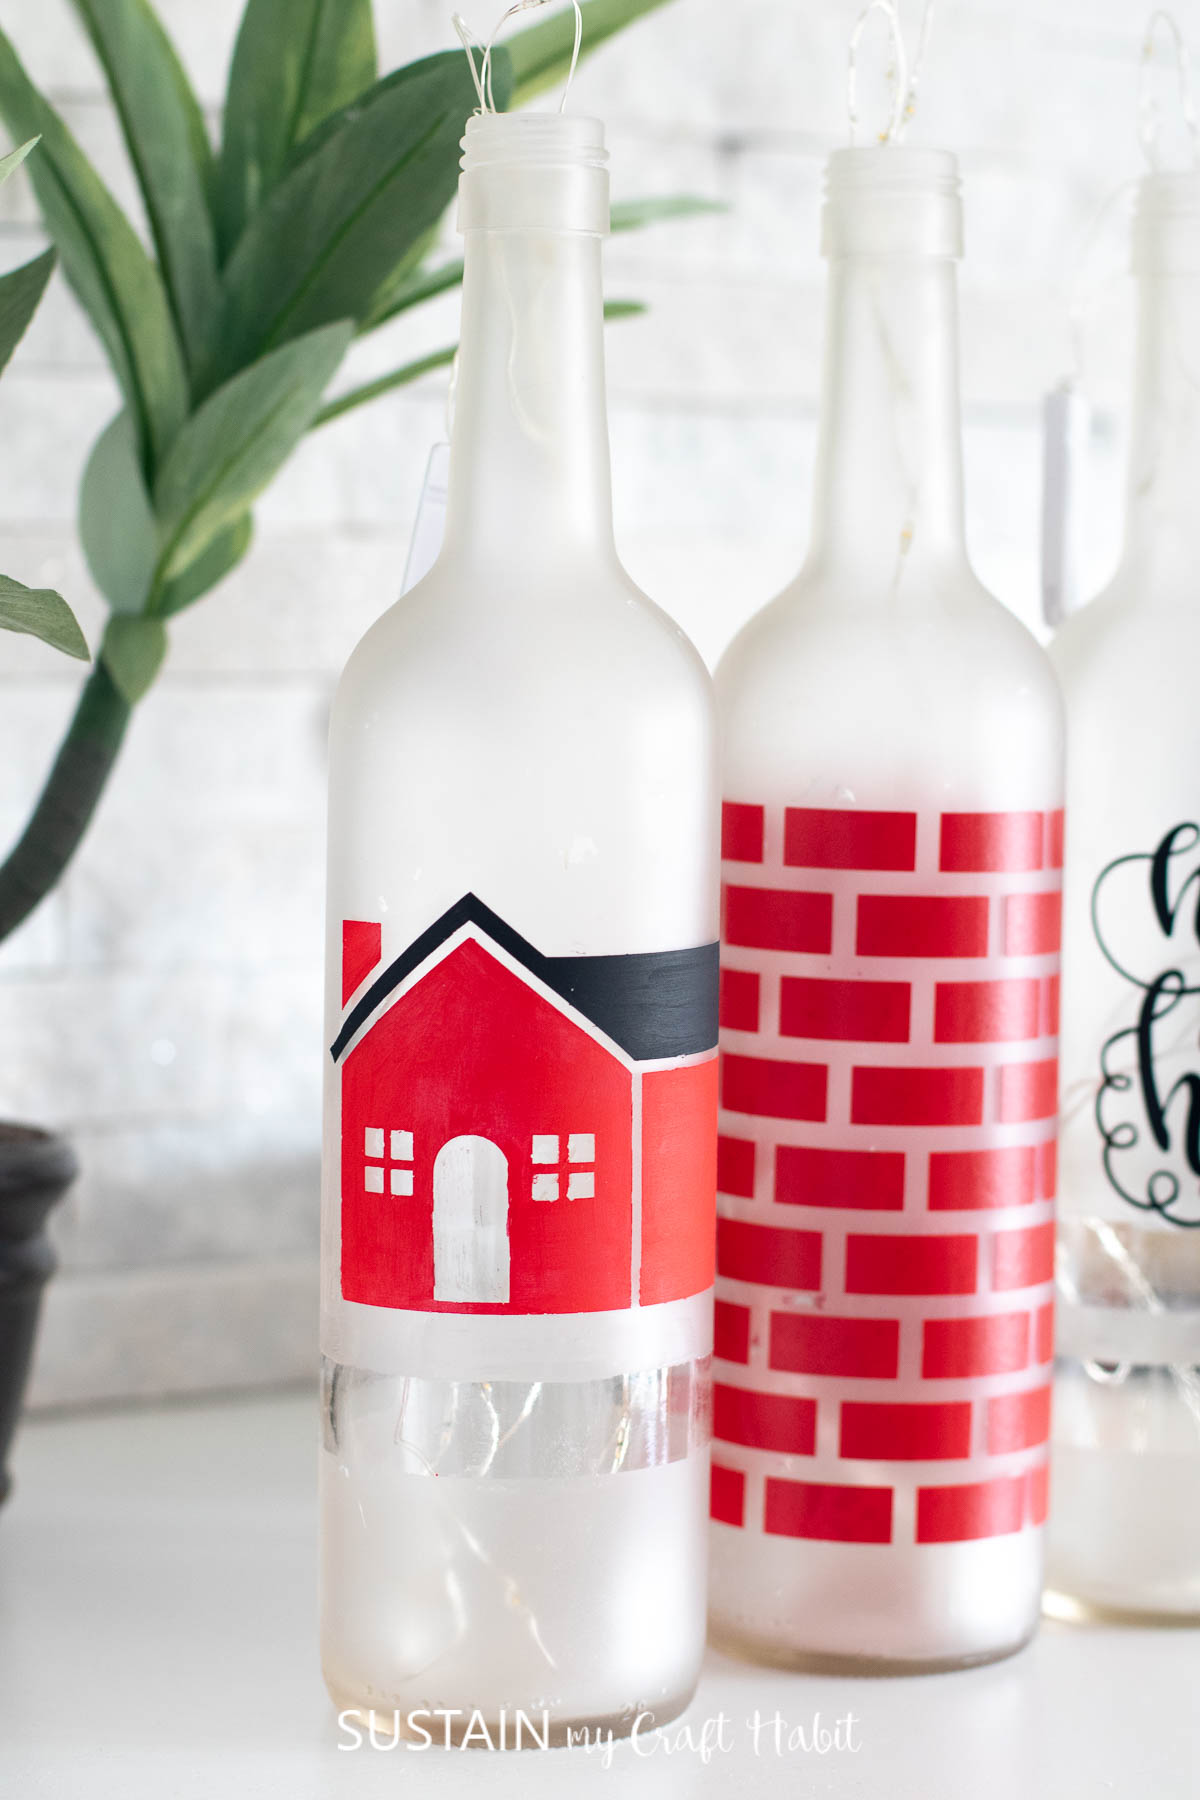 Close up image of the bottle painted with a red and white house using the vinyl stencil cut wiht the Cricut Maker.